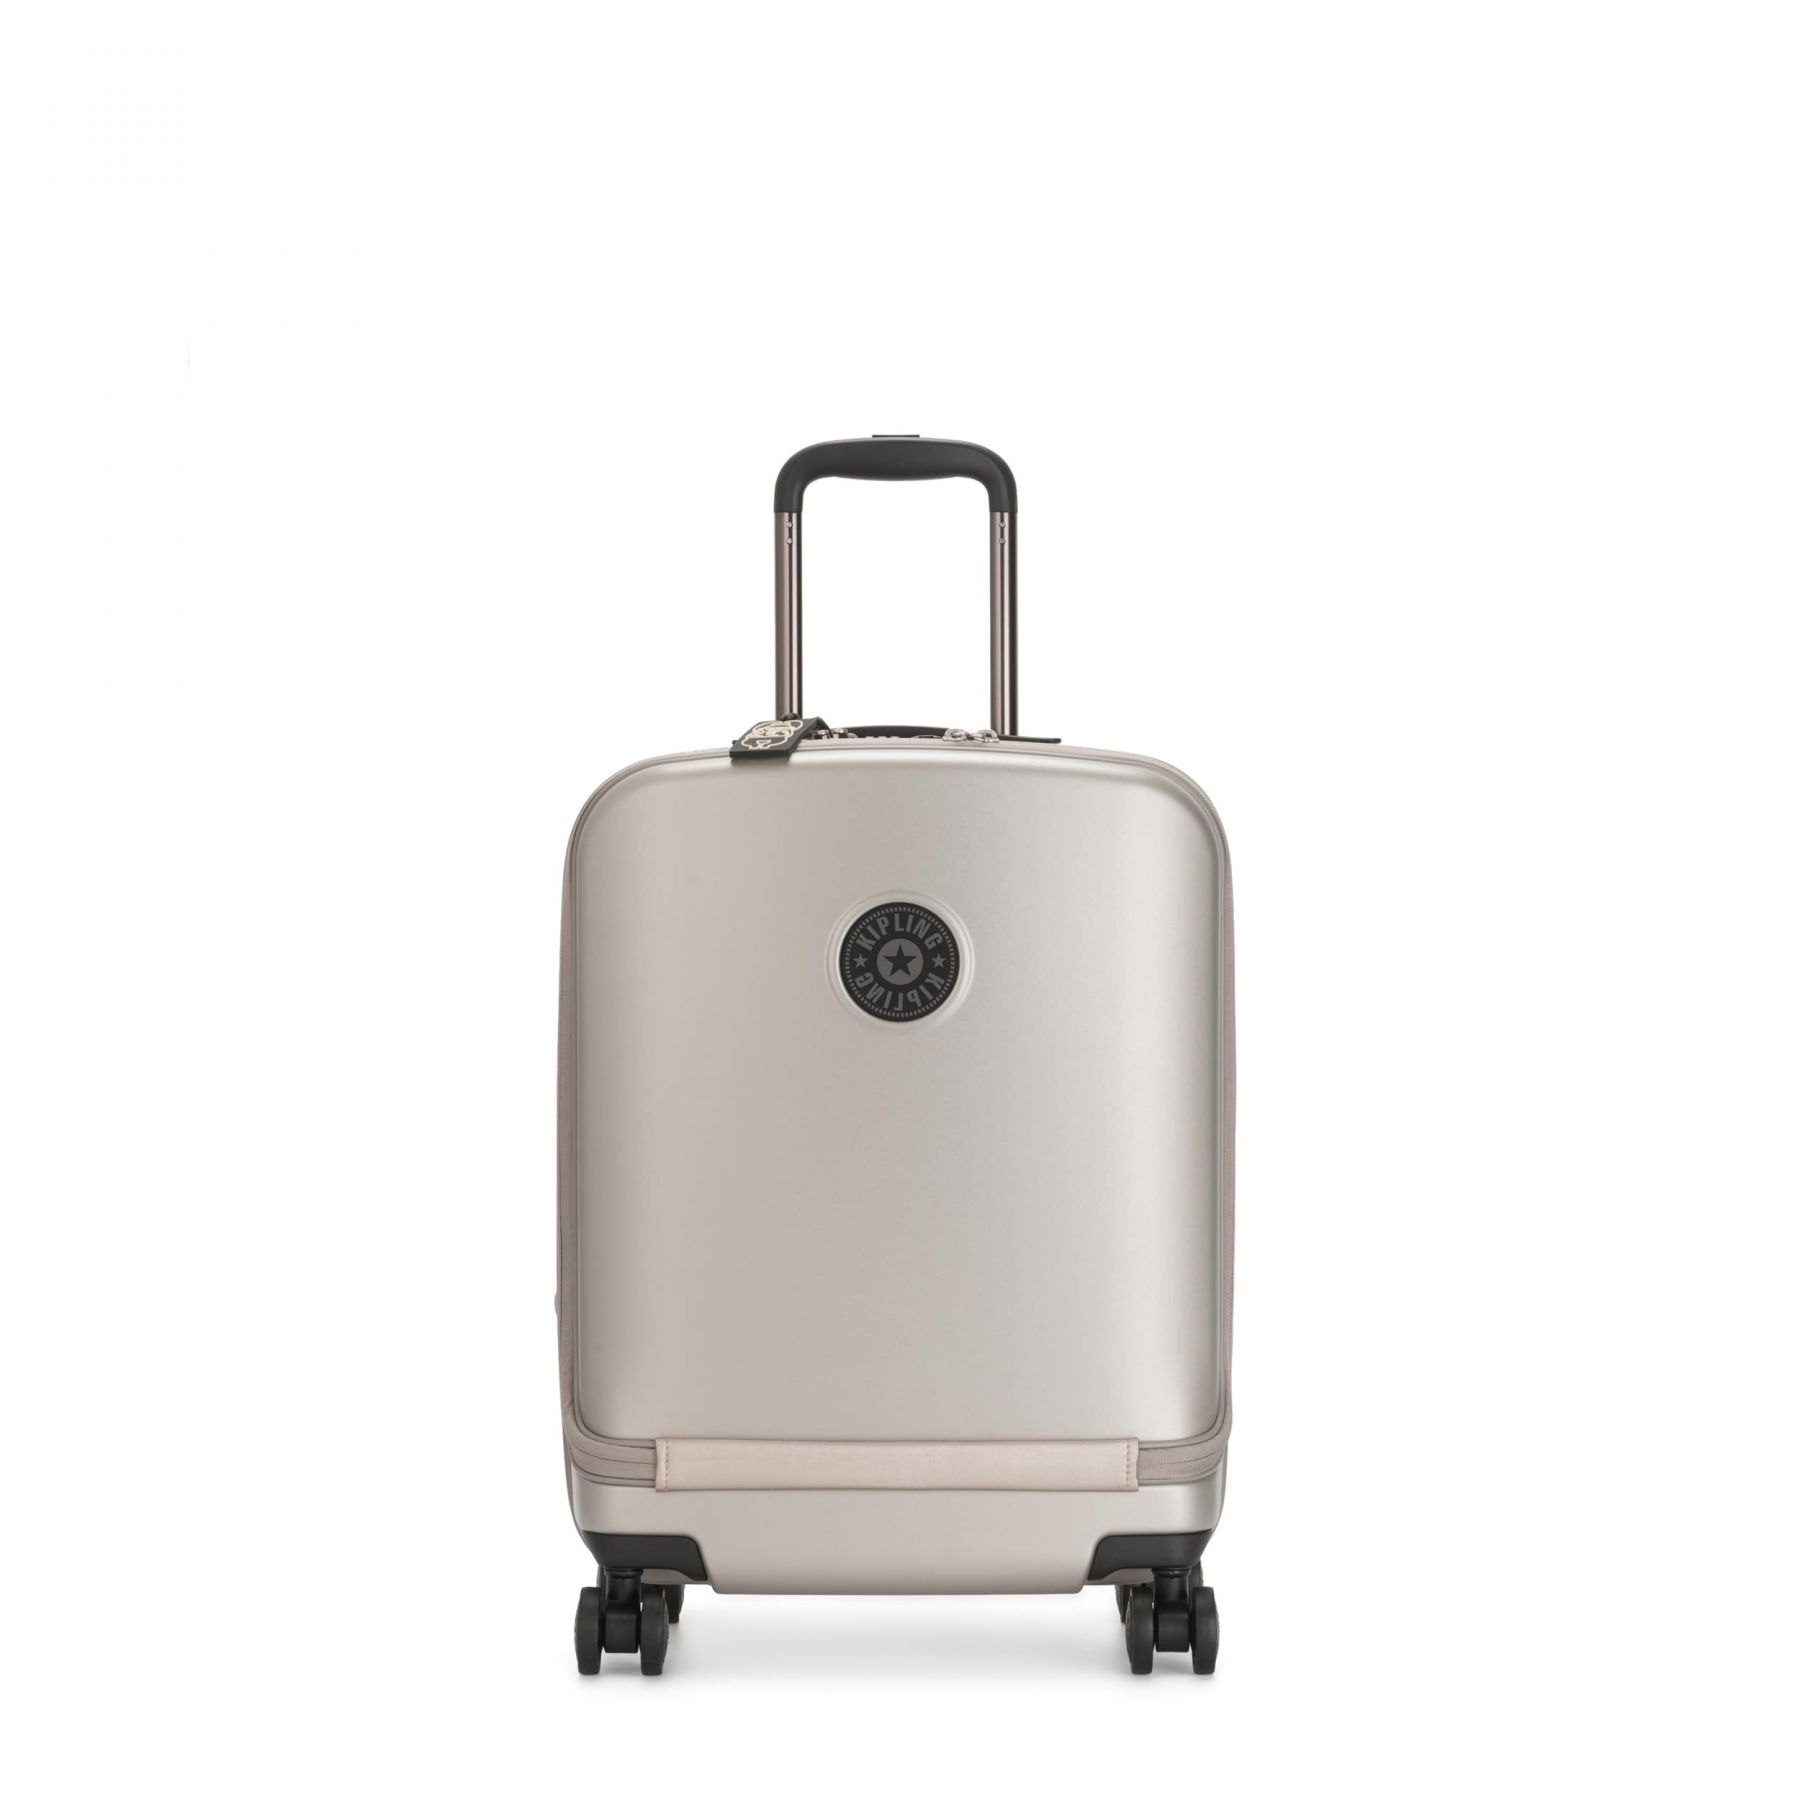 CURIOSITY PKT Latest Luggage by Kipling - Front view